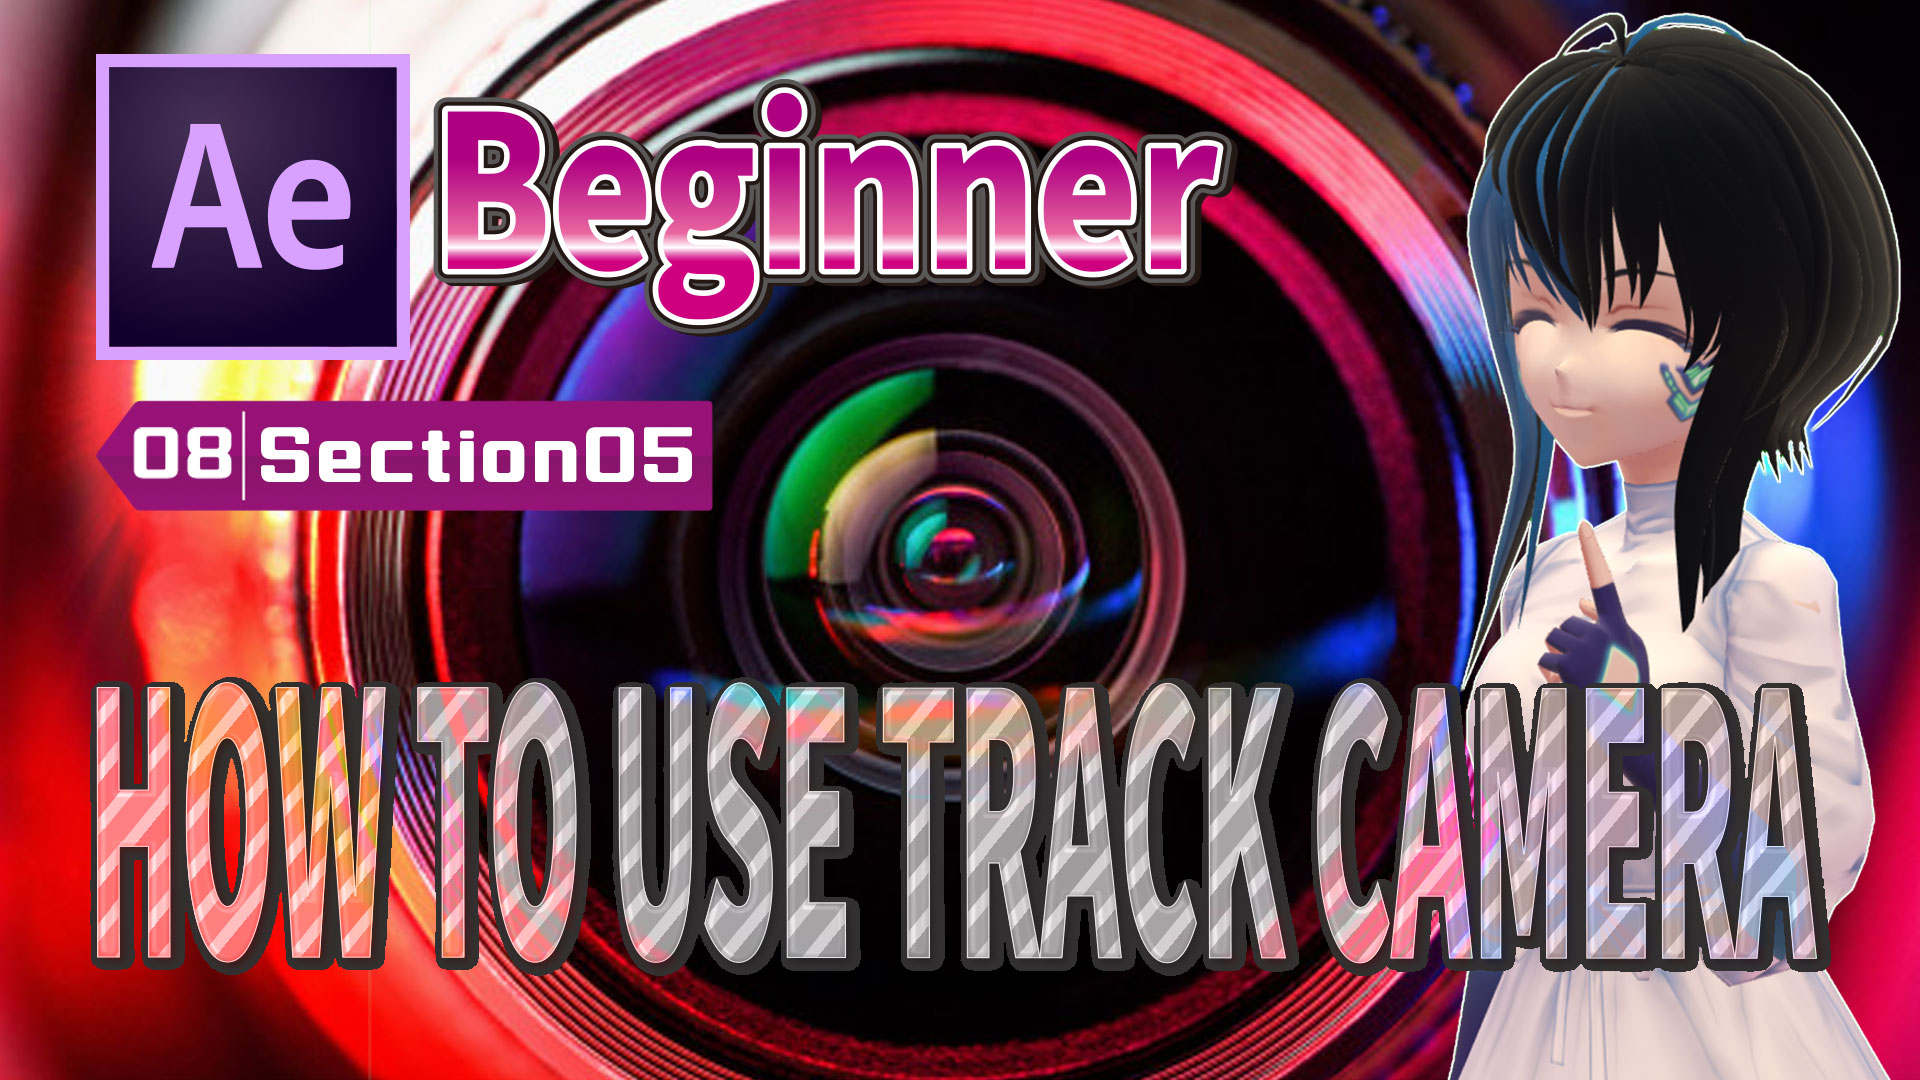 HOW TO USE TRACK CAMERA